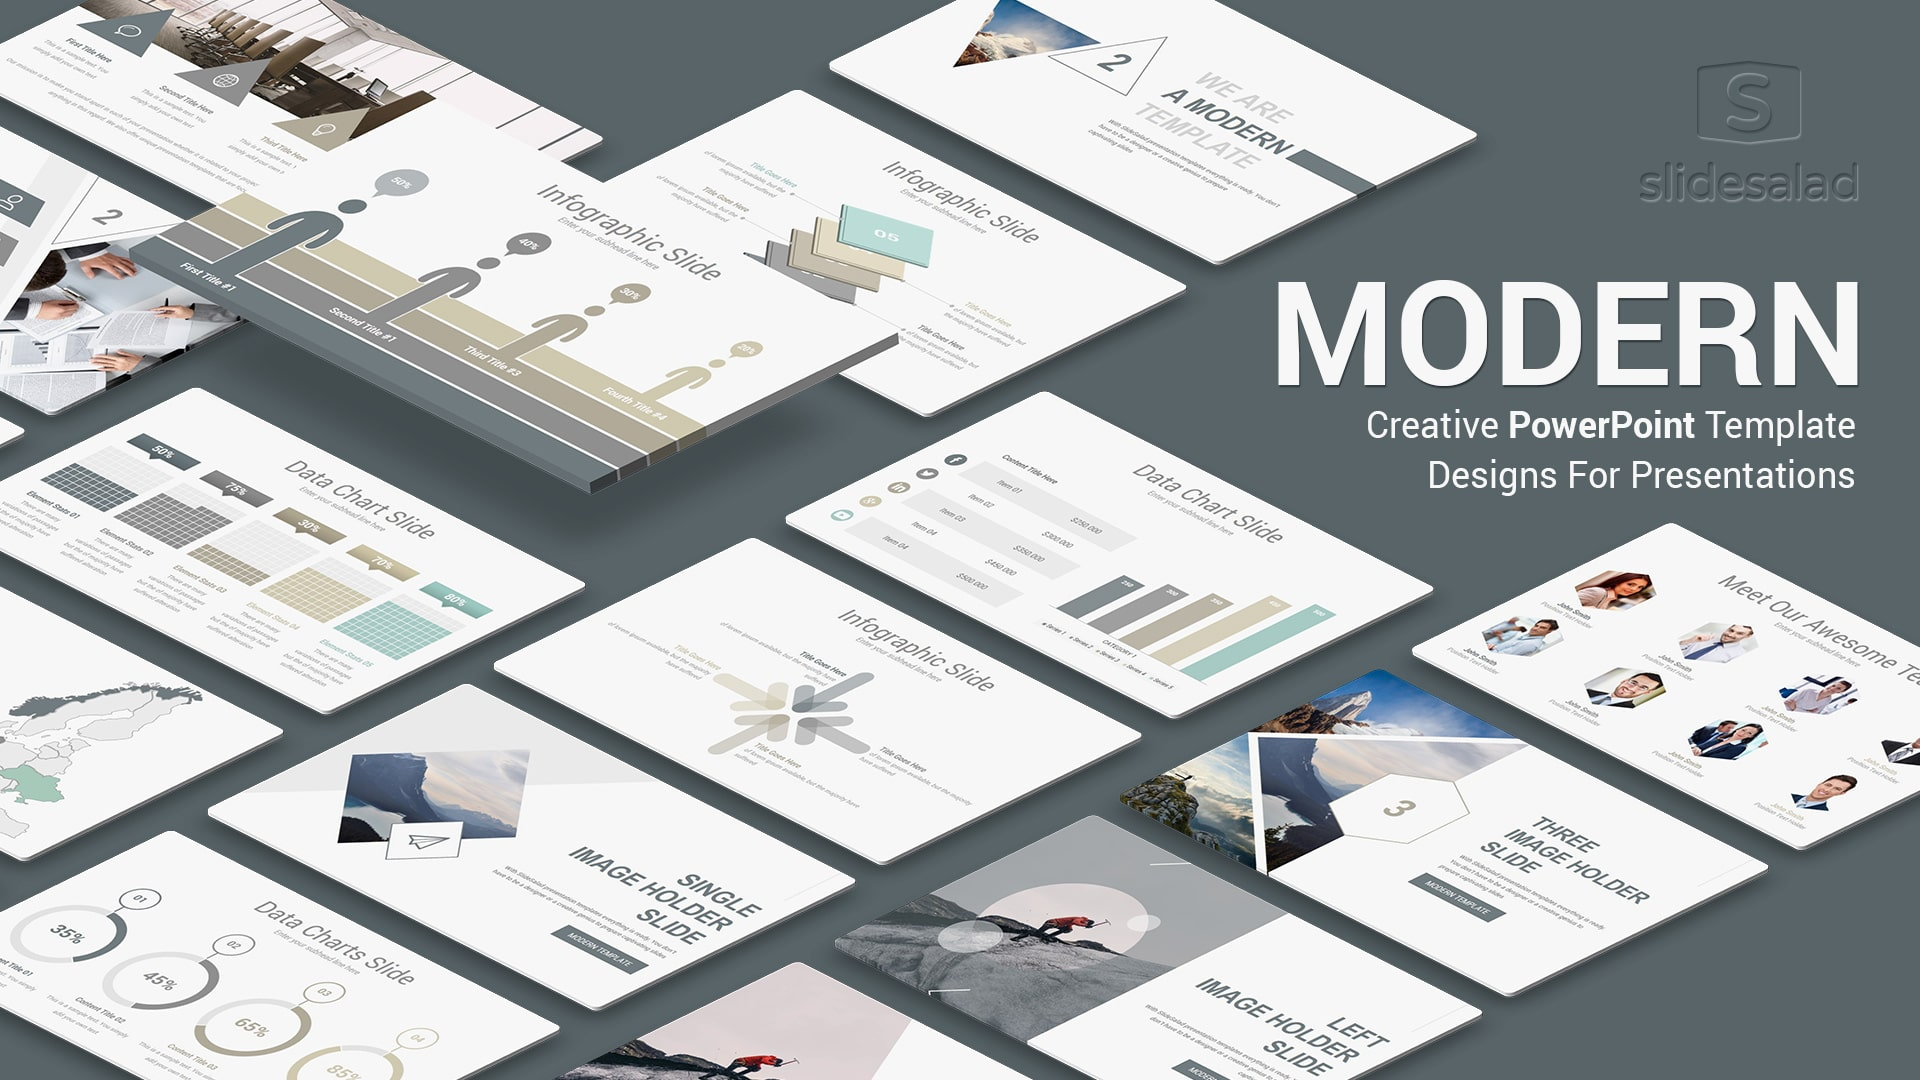 Modern PowerPoint Template for Presentation - Creative PPT Startup Pitch Deck With Cool Slides